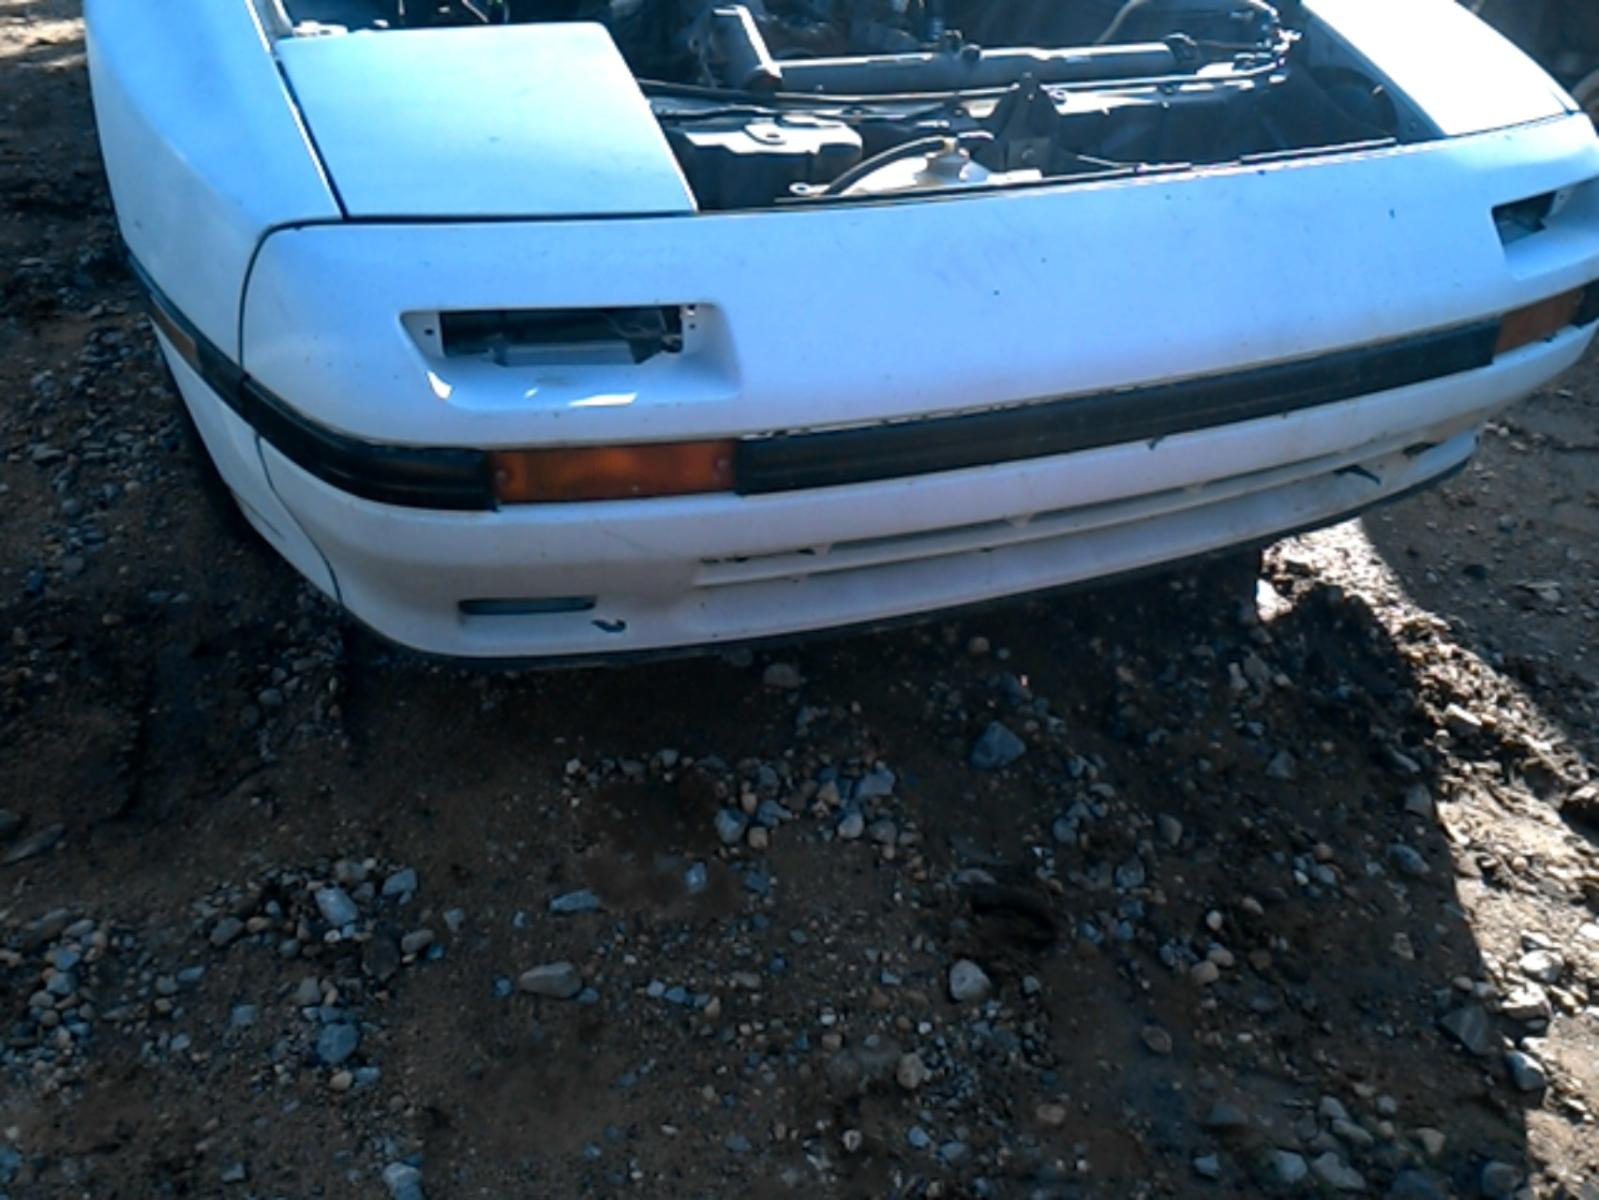 Convertible rx7 fuse box main wiring schematic diagram 1991 mazda rx-7 convertible convertible rx7 fuse box main best wiring library convertible 88 rx 7 convertible rx7 fuse box